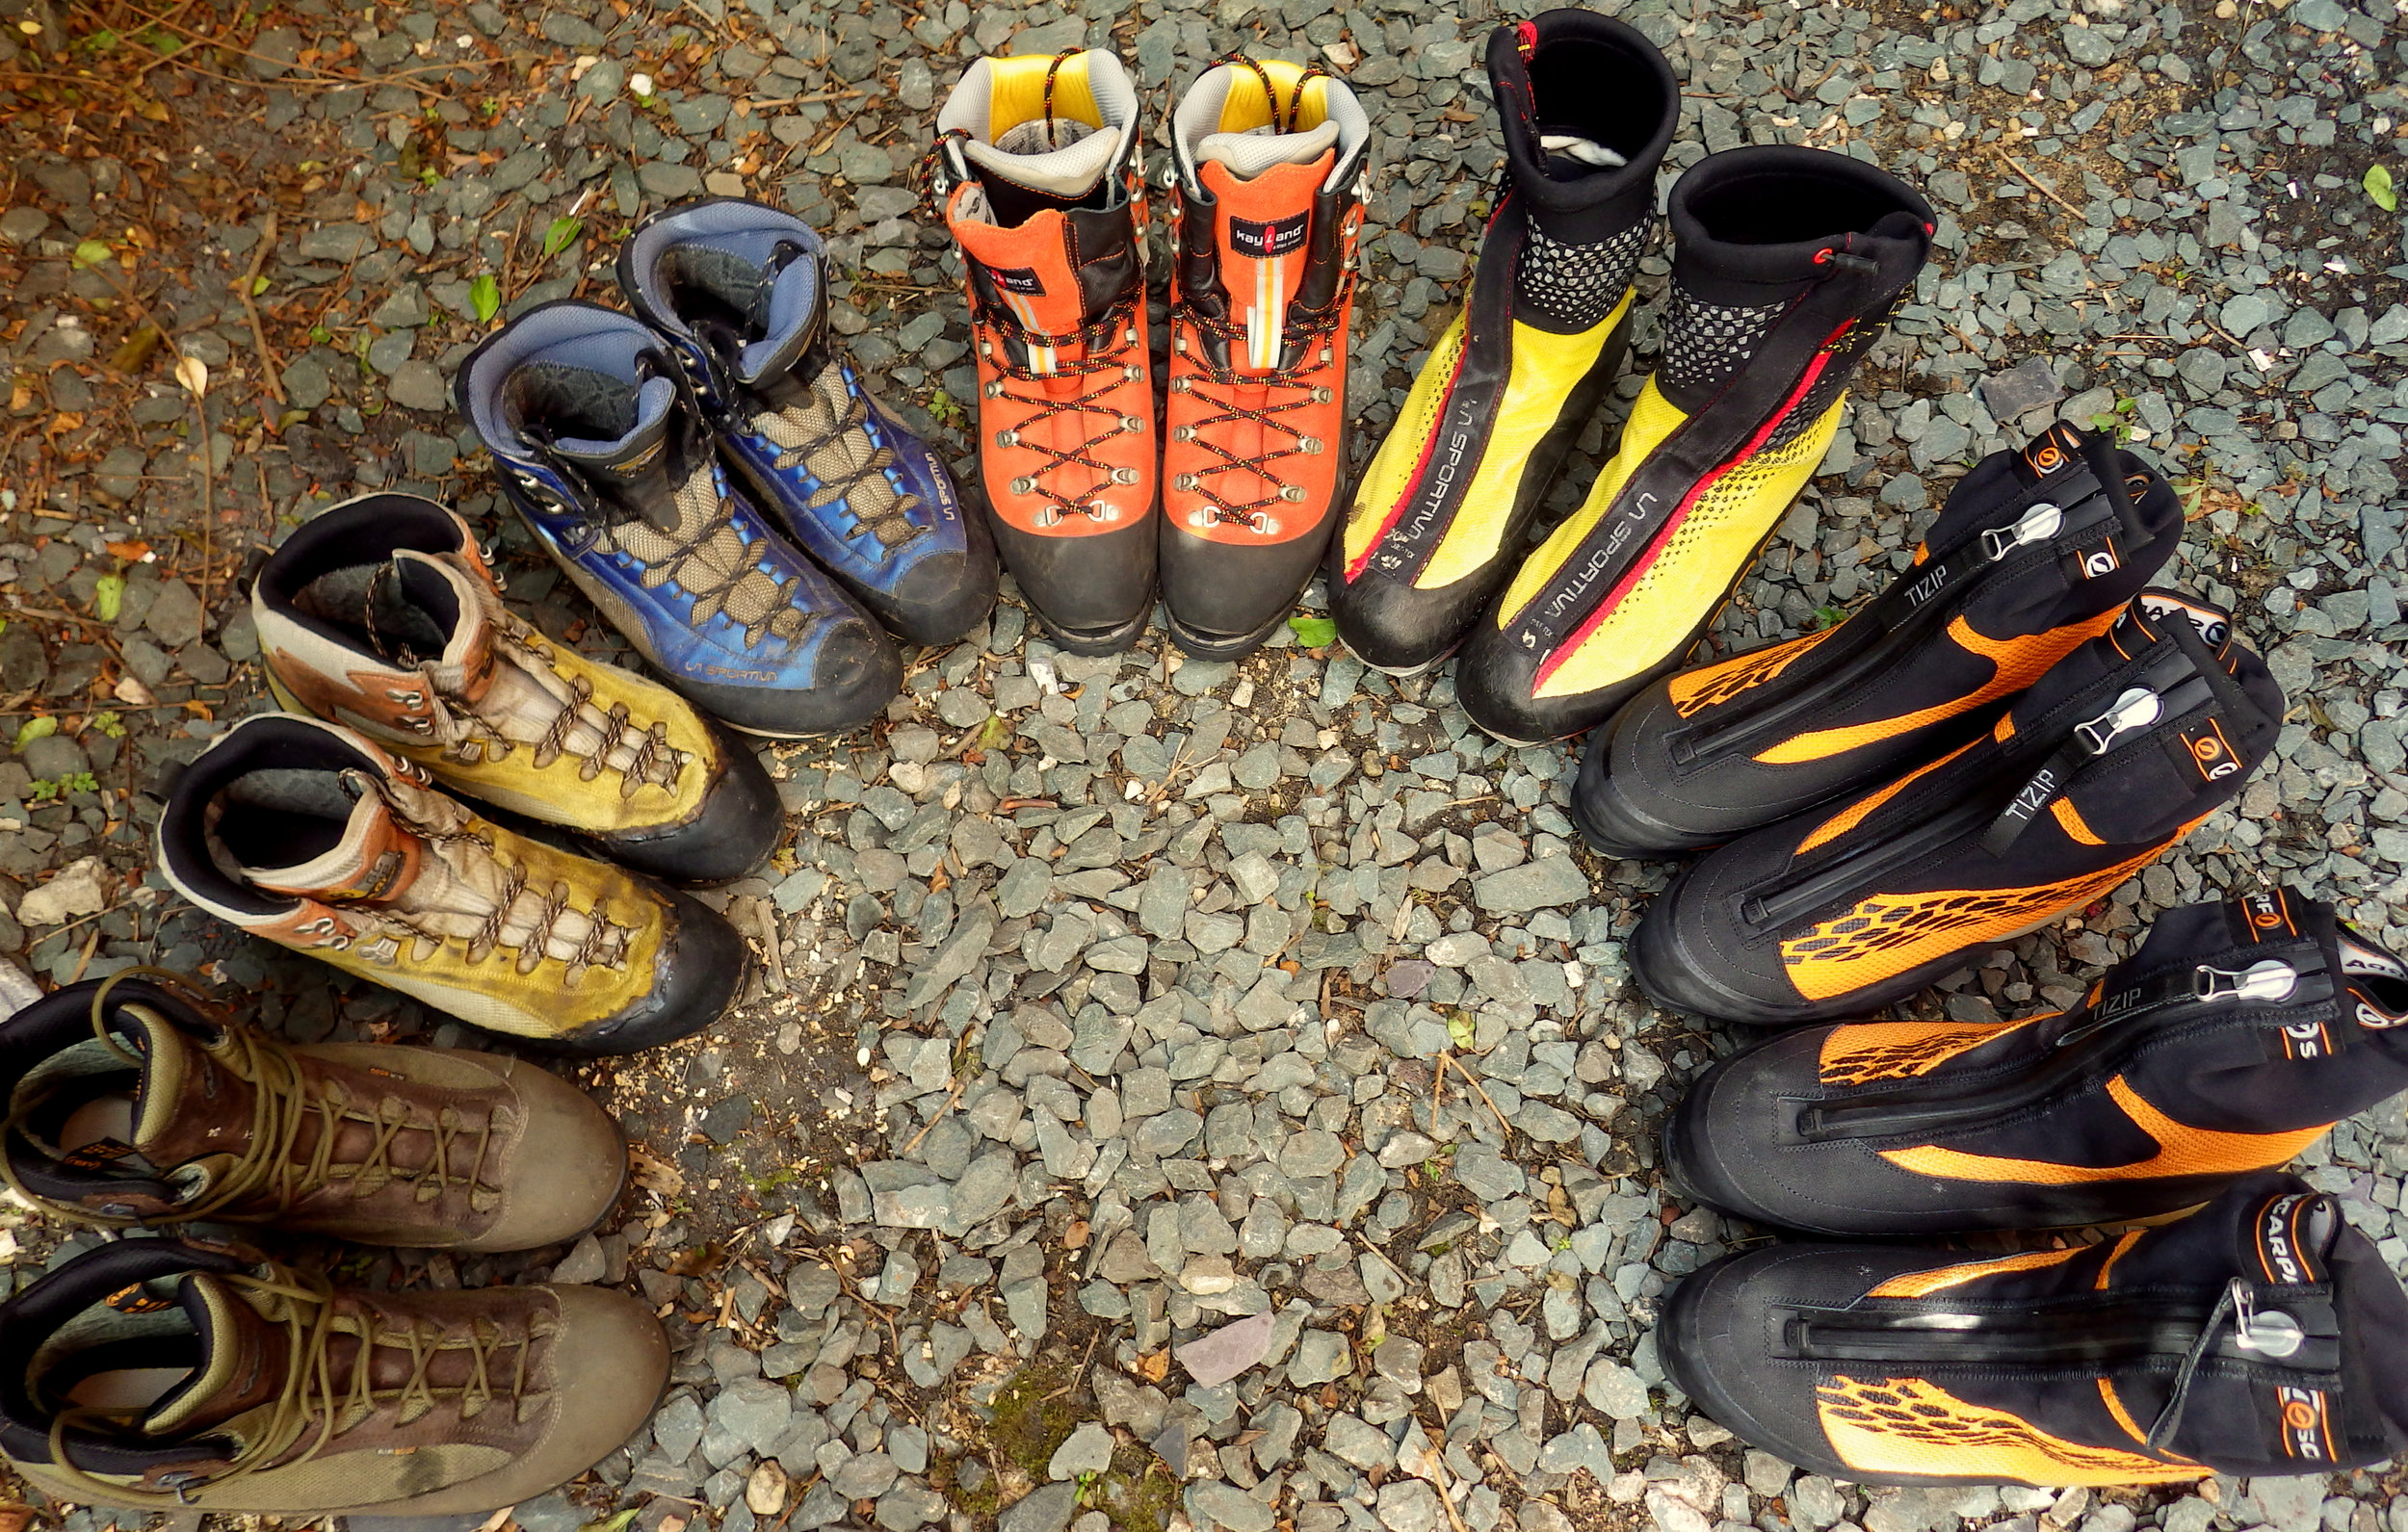 A selection of boots from BO (left) through to B3 (right)